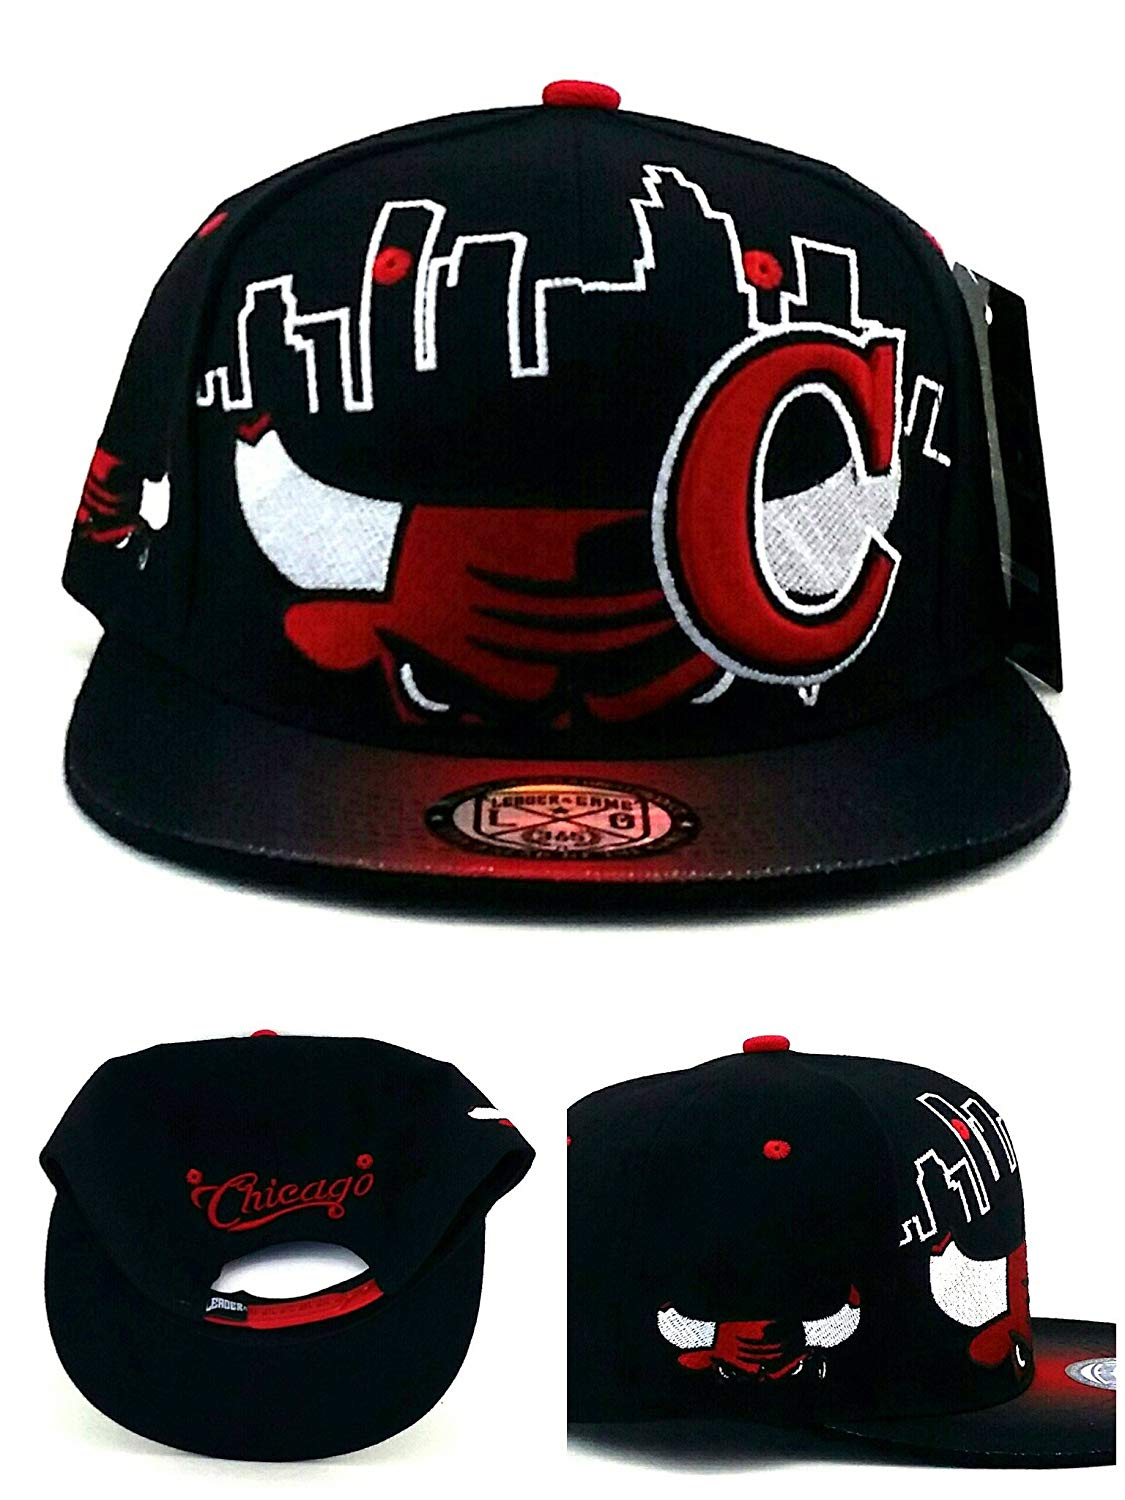 3a80131dc09 Get Quotations · Chicago New Leader Bull Head Skyline Bulls Colors Black Red  Era Snapback Hat Cap